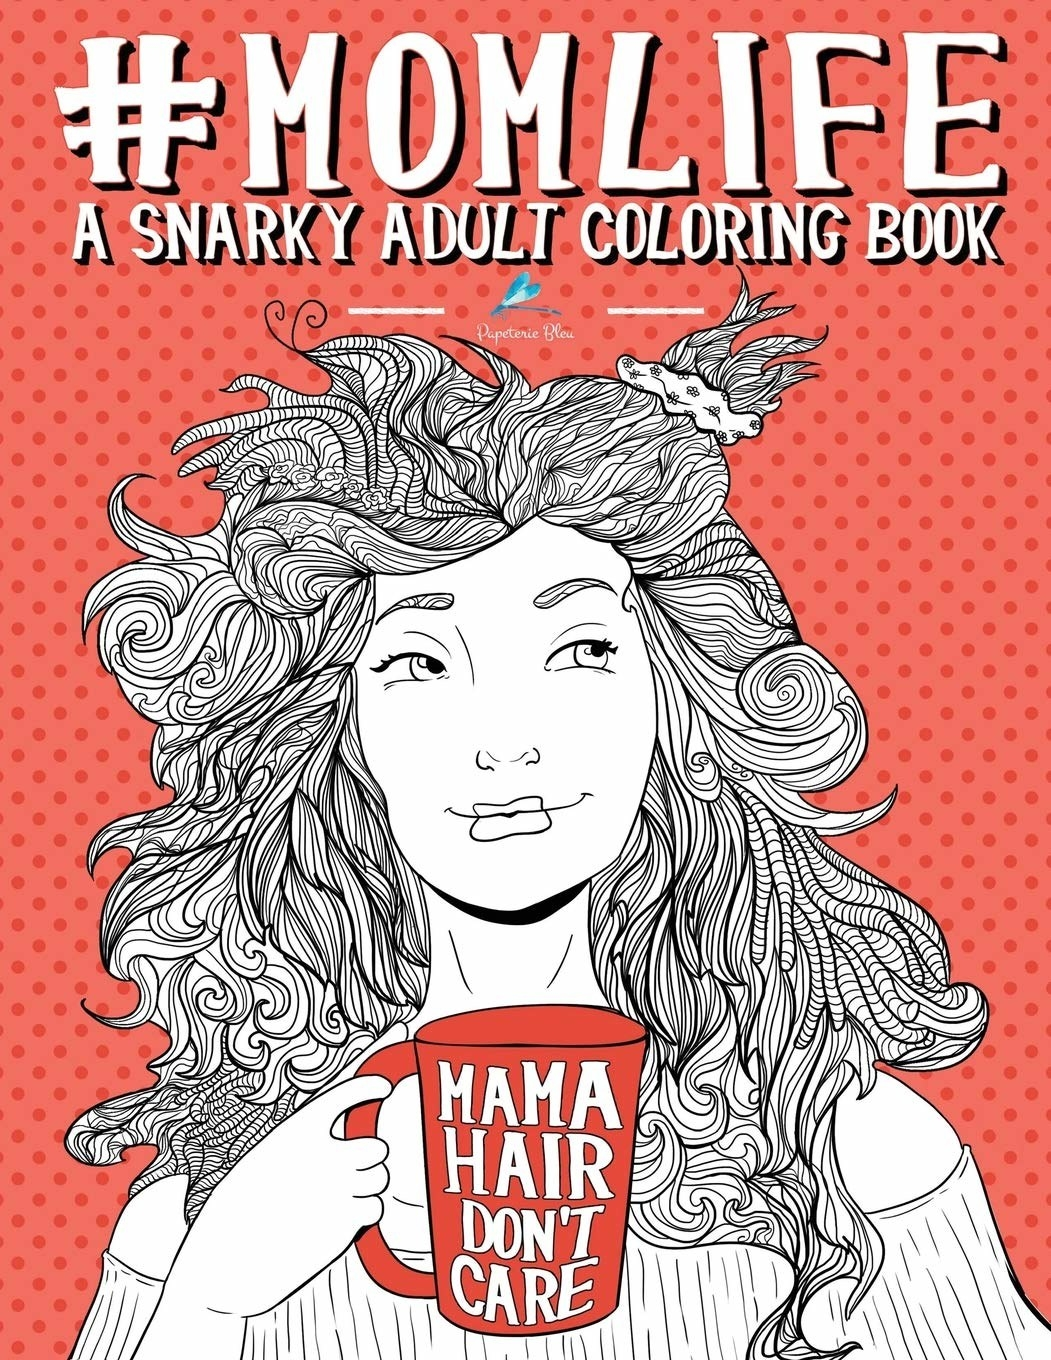 Adult Coloring Books Buzzfeed : adult, coloring, books, buzzfeed, Hilarious, Coloring, Books, That'll, Definitely, De-Stress